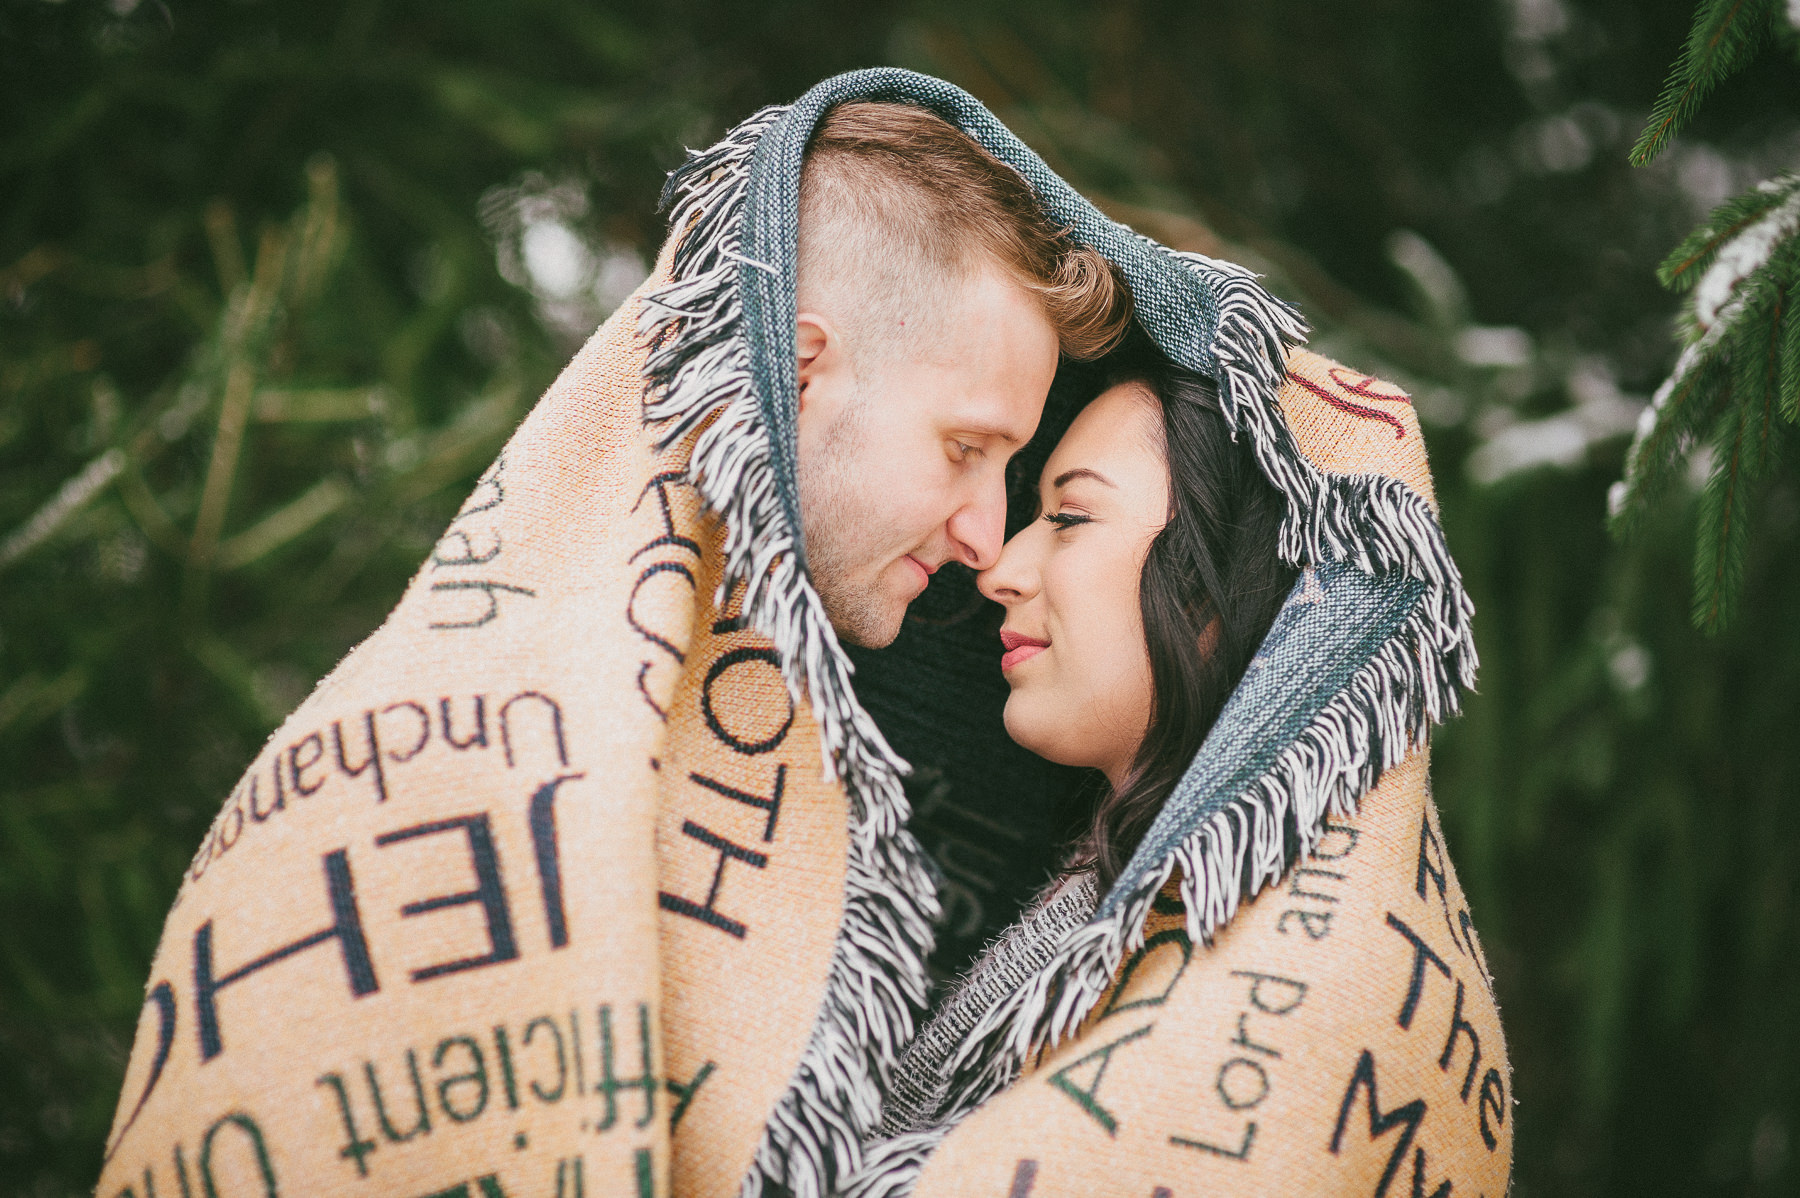 breighton-and-basette-photography-copyrighted-image-blog-abigail-and-ryne-engagement-cover.jpg